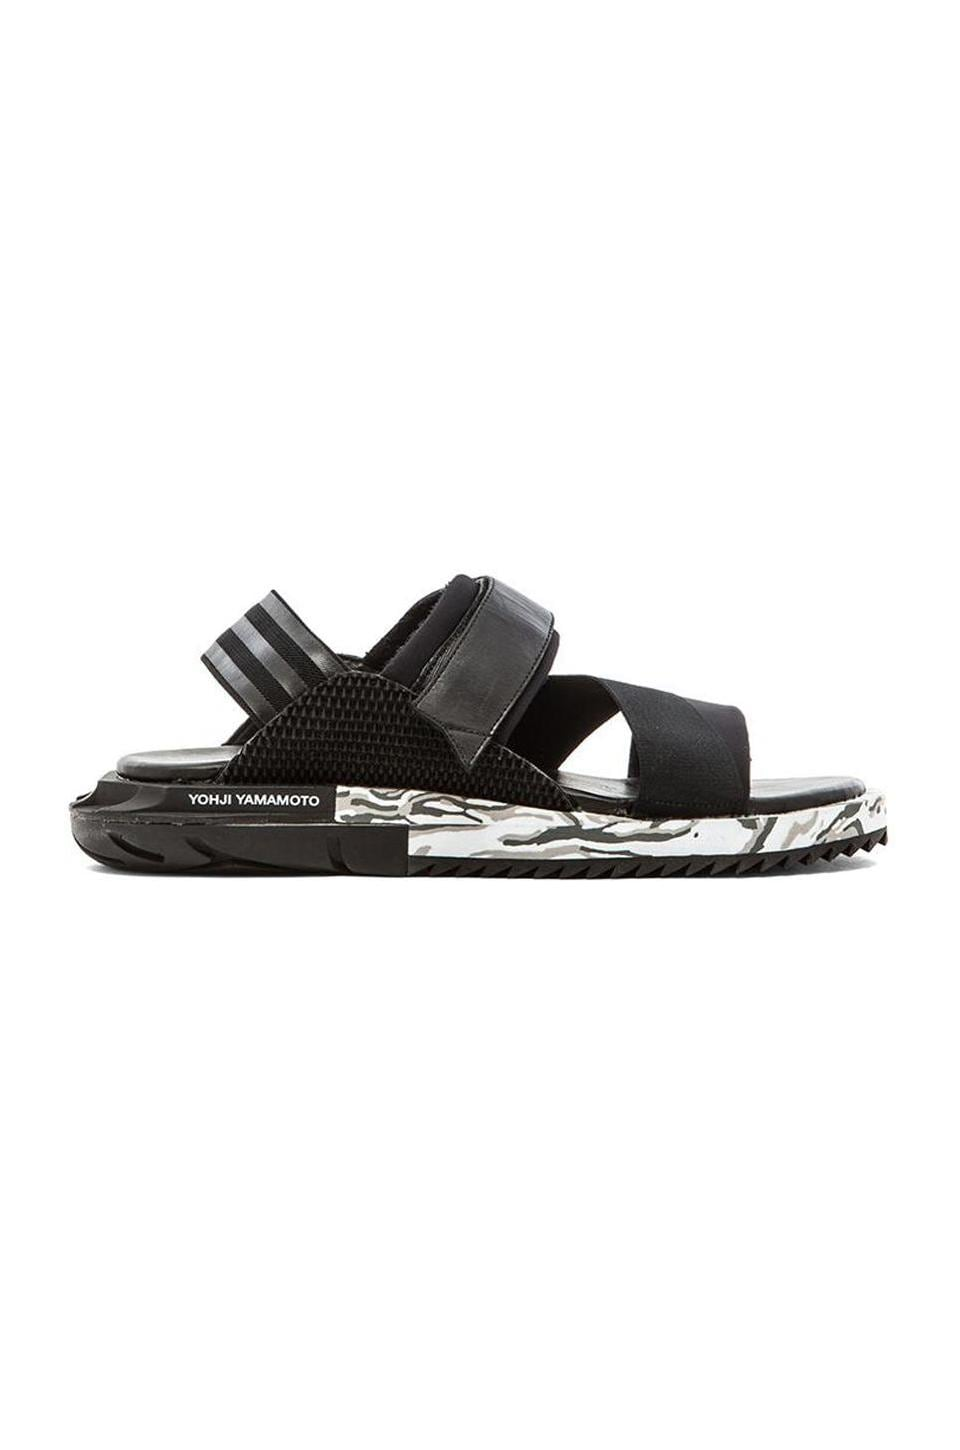 24d1640047a4 Y-3 Yohji Yamamoto Kaohe Sandal in BlkY-3 BlkY-3 BlkY-3